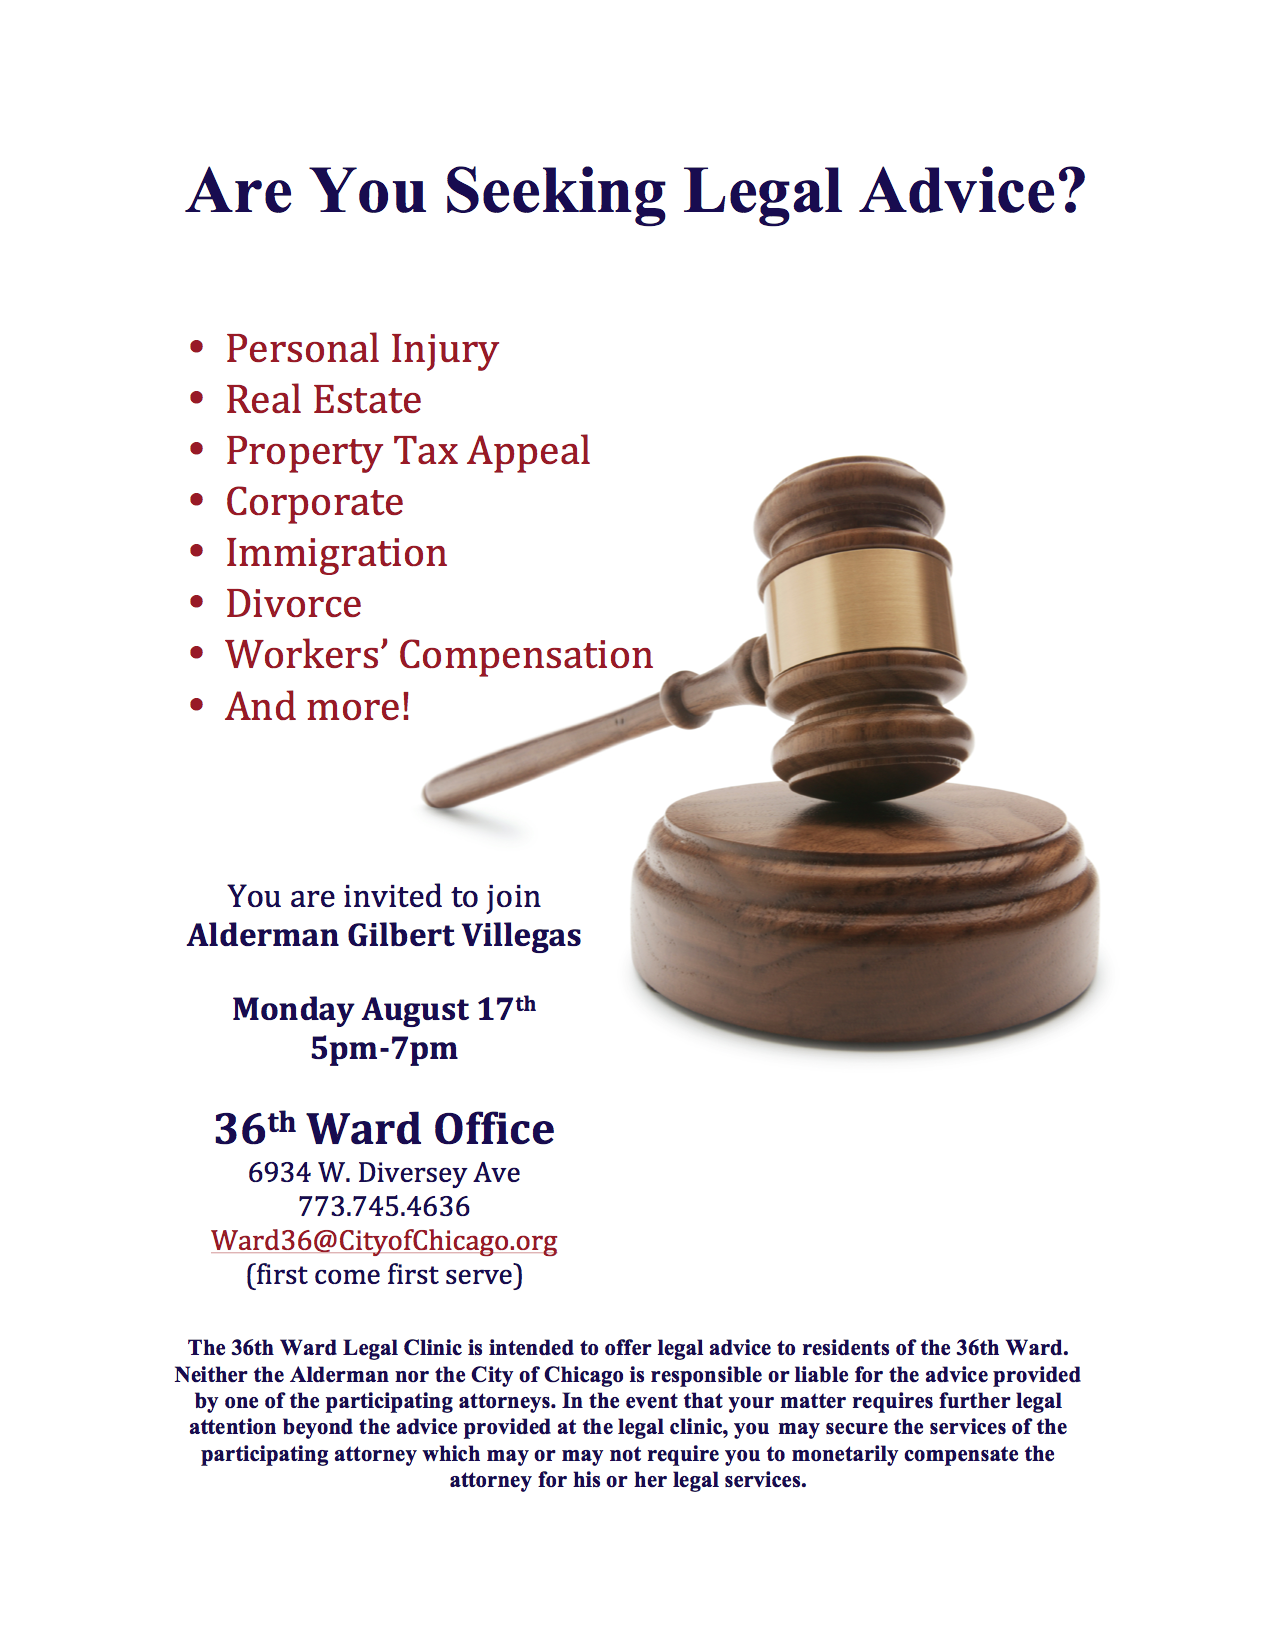 Are_You_Seeking_Legal_Advice_Flyer_8-17.png